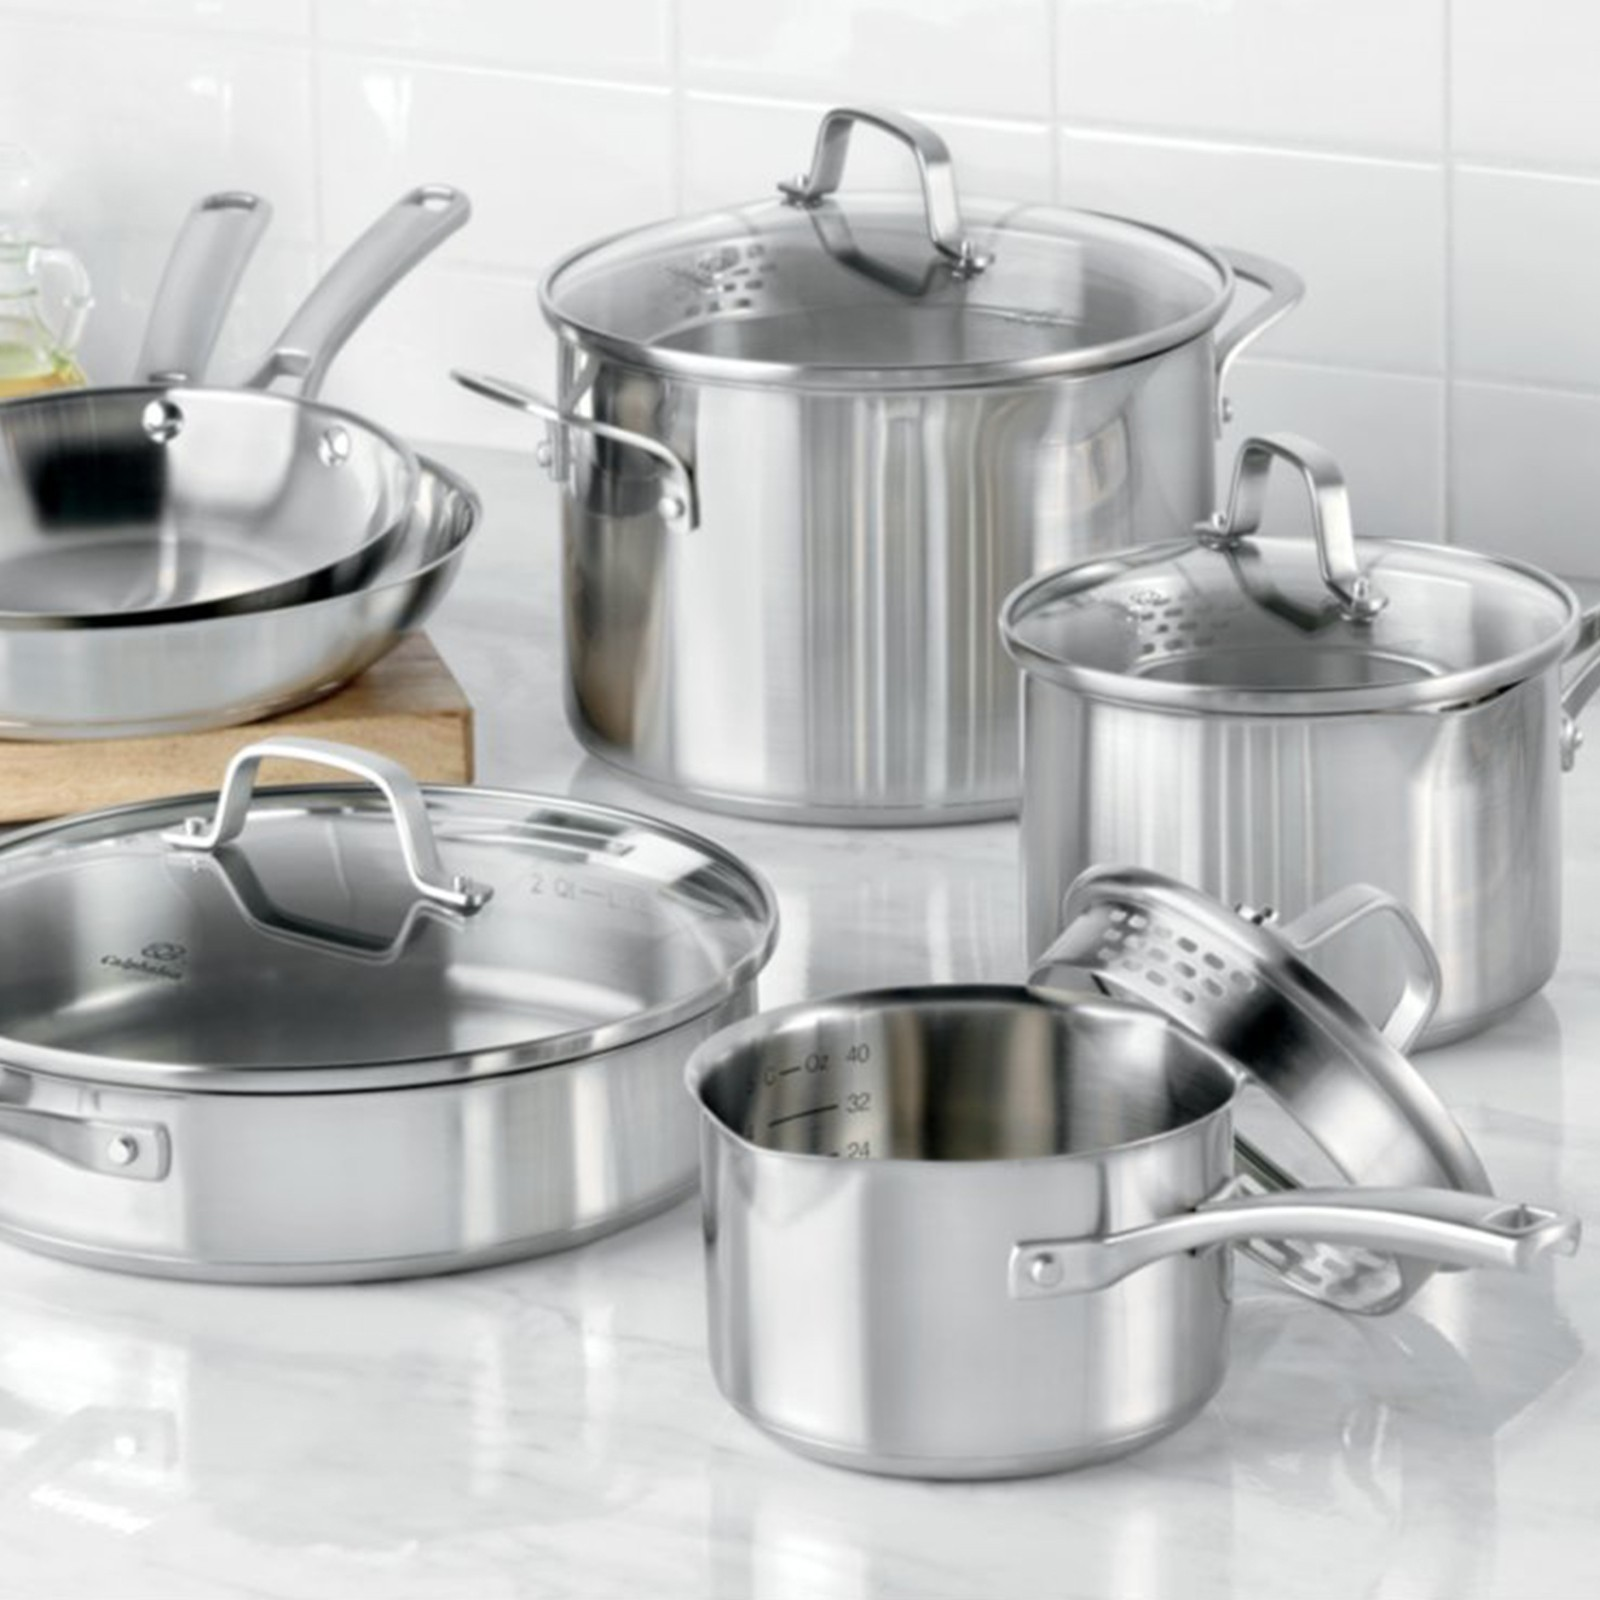 calphalon kitchen essentials stainless steel food storage classic 10 piece cookware set by zola